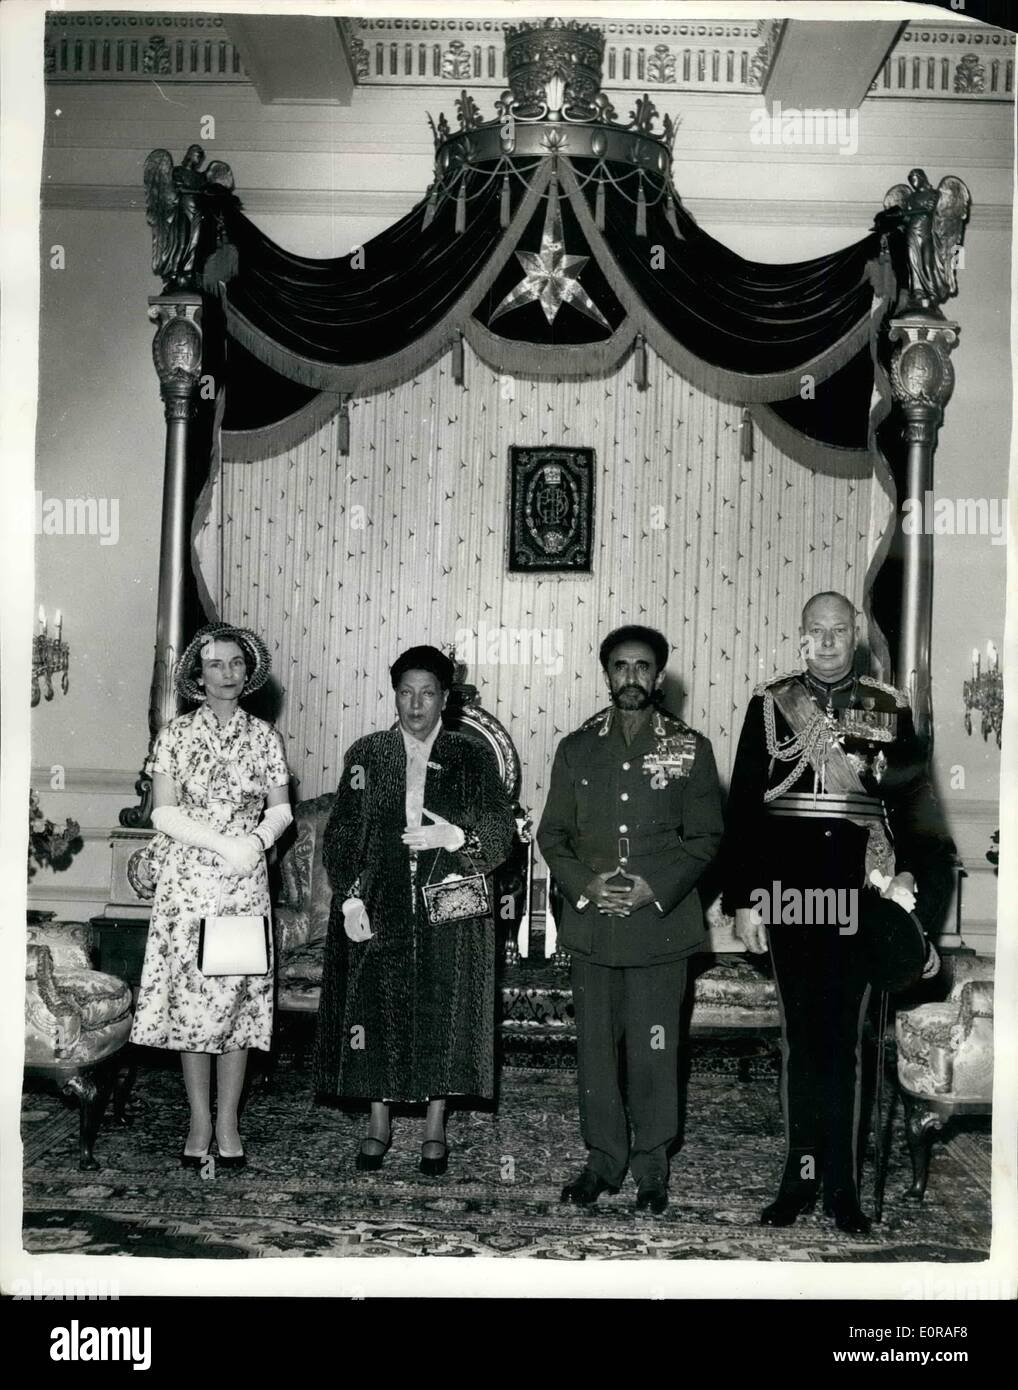 Nov. 11, 1958 - Duke and Duchess Of Gloucester In Ethiopia. Photo Shows: Posed group in the Throne Room at Addis Ababa - the Duke and Duchess of Gloucester - with the Emperor and Empress Haile Selassie - on arrival of the Royal Visitors on their official visit to Ethiopia. - Stock Image